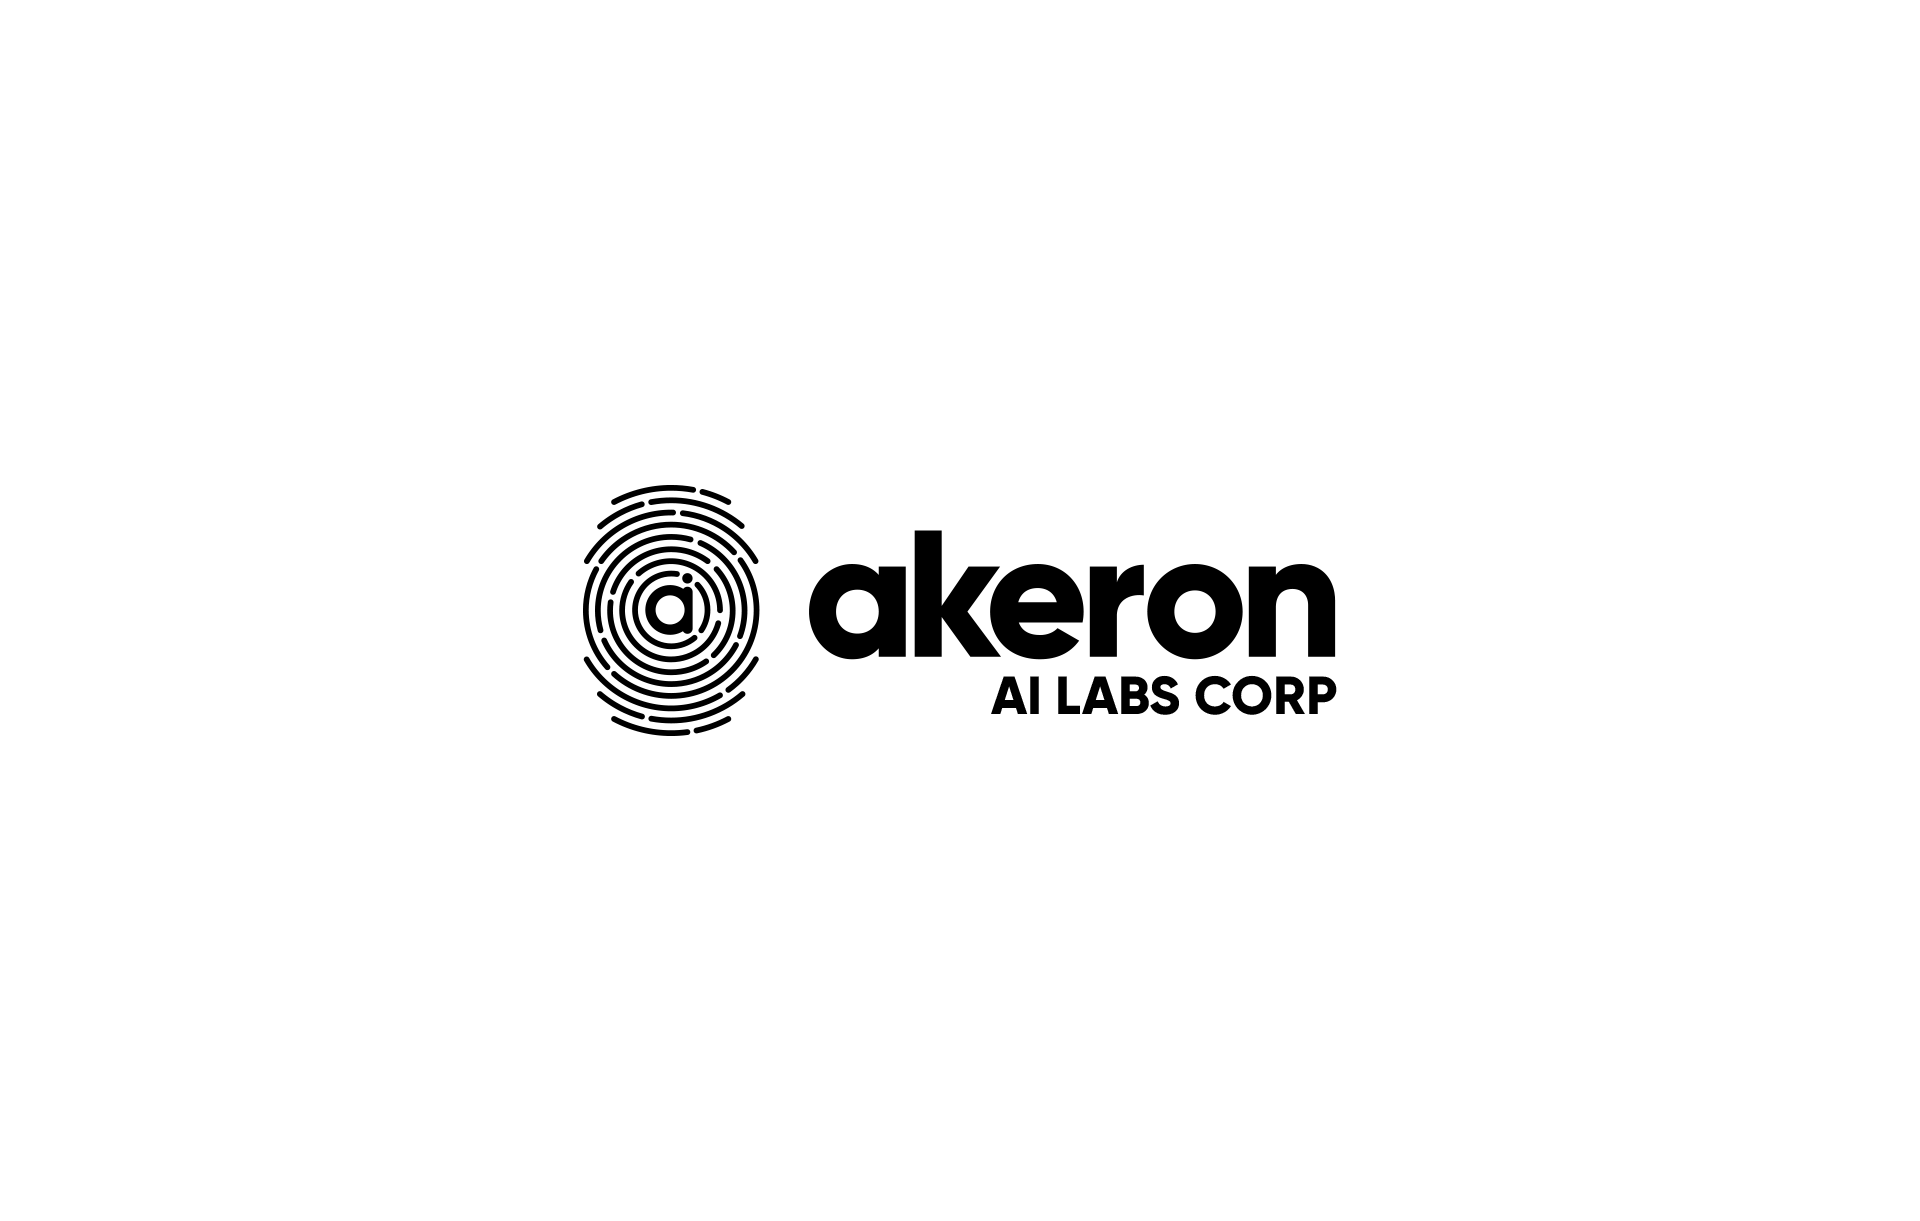 Akeron Logo Design By Scott Luscombe